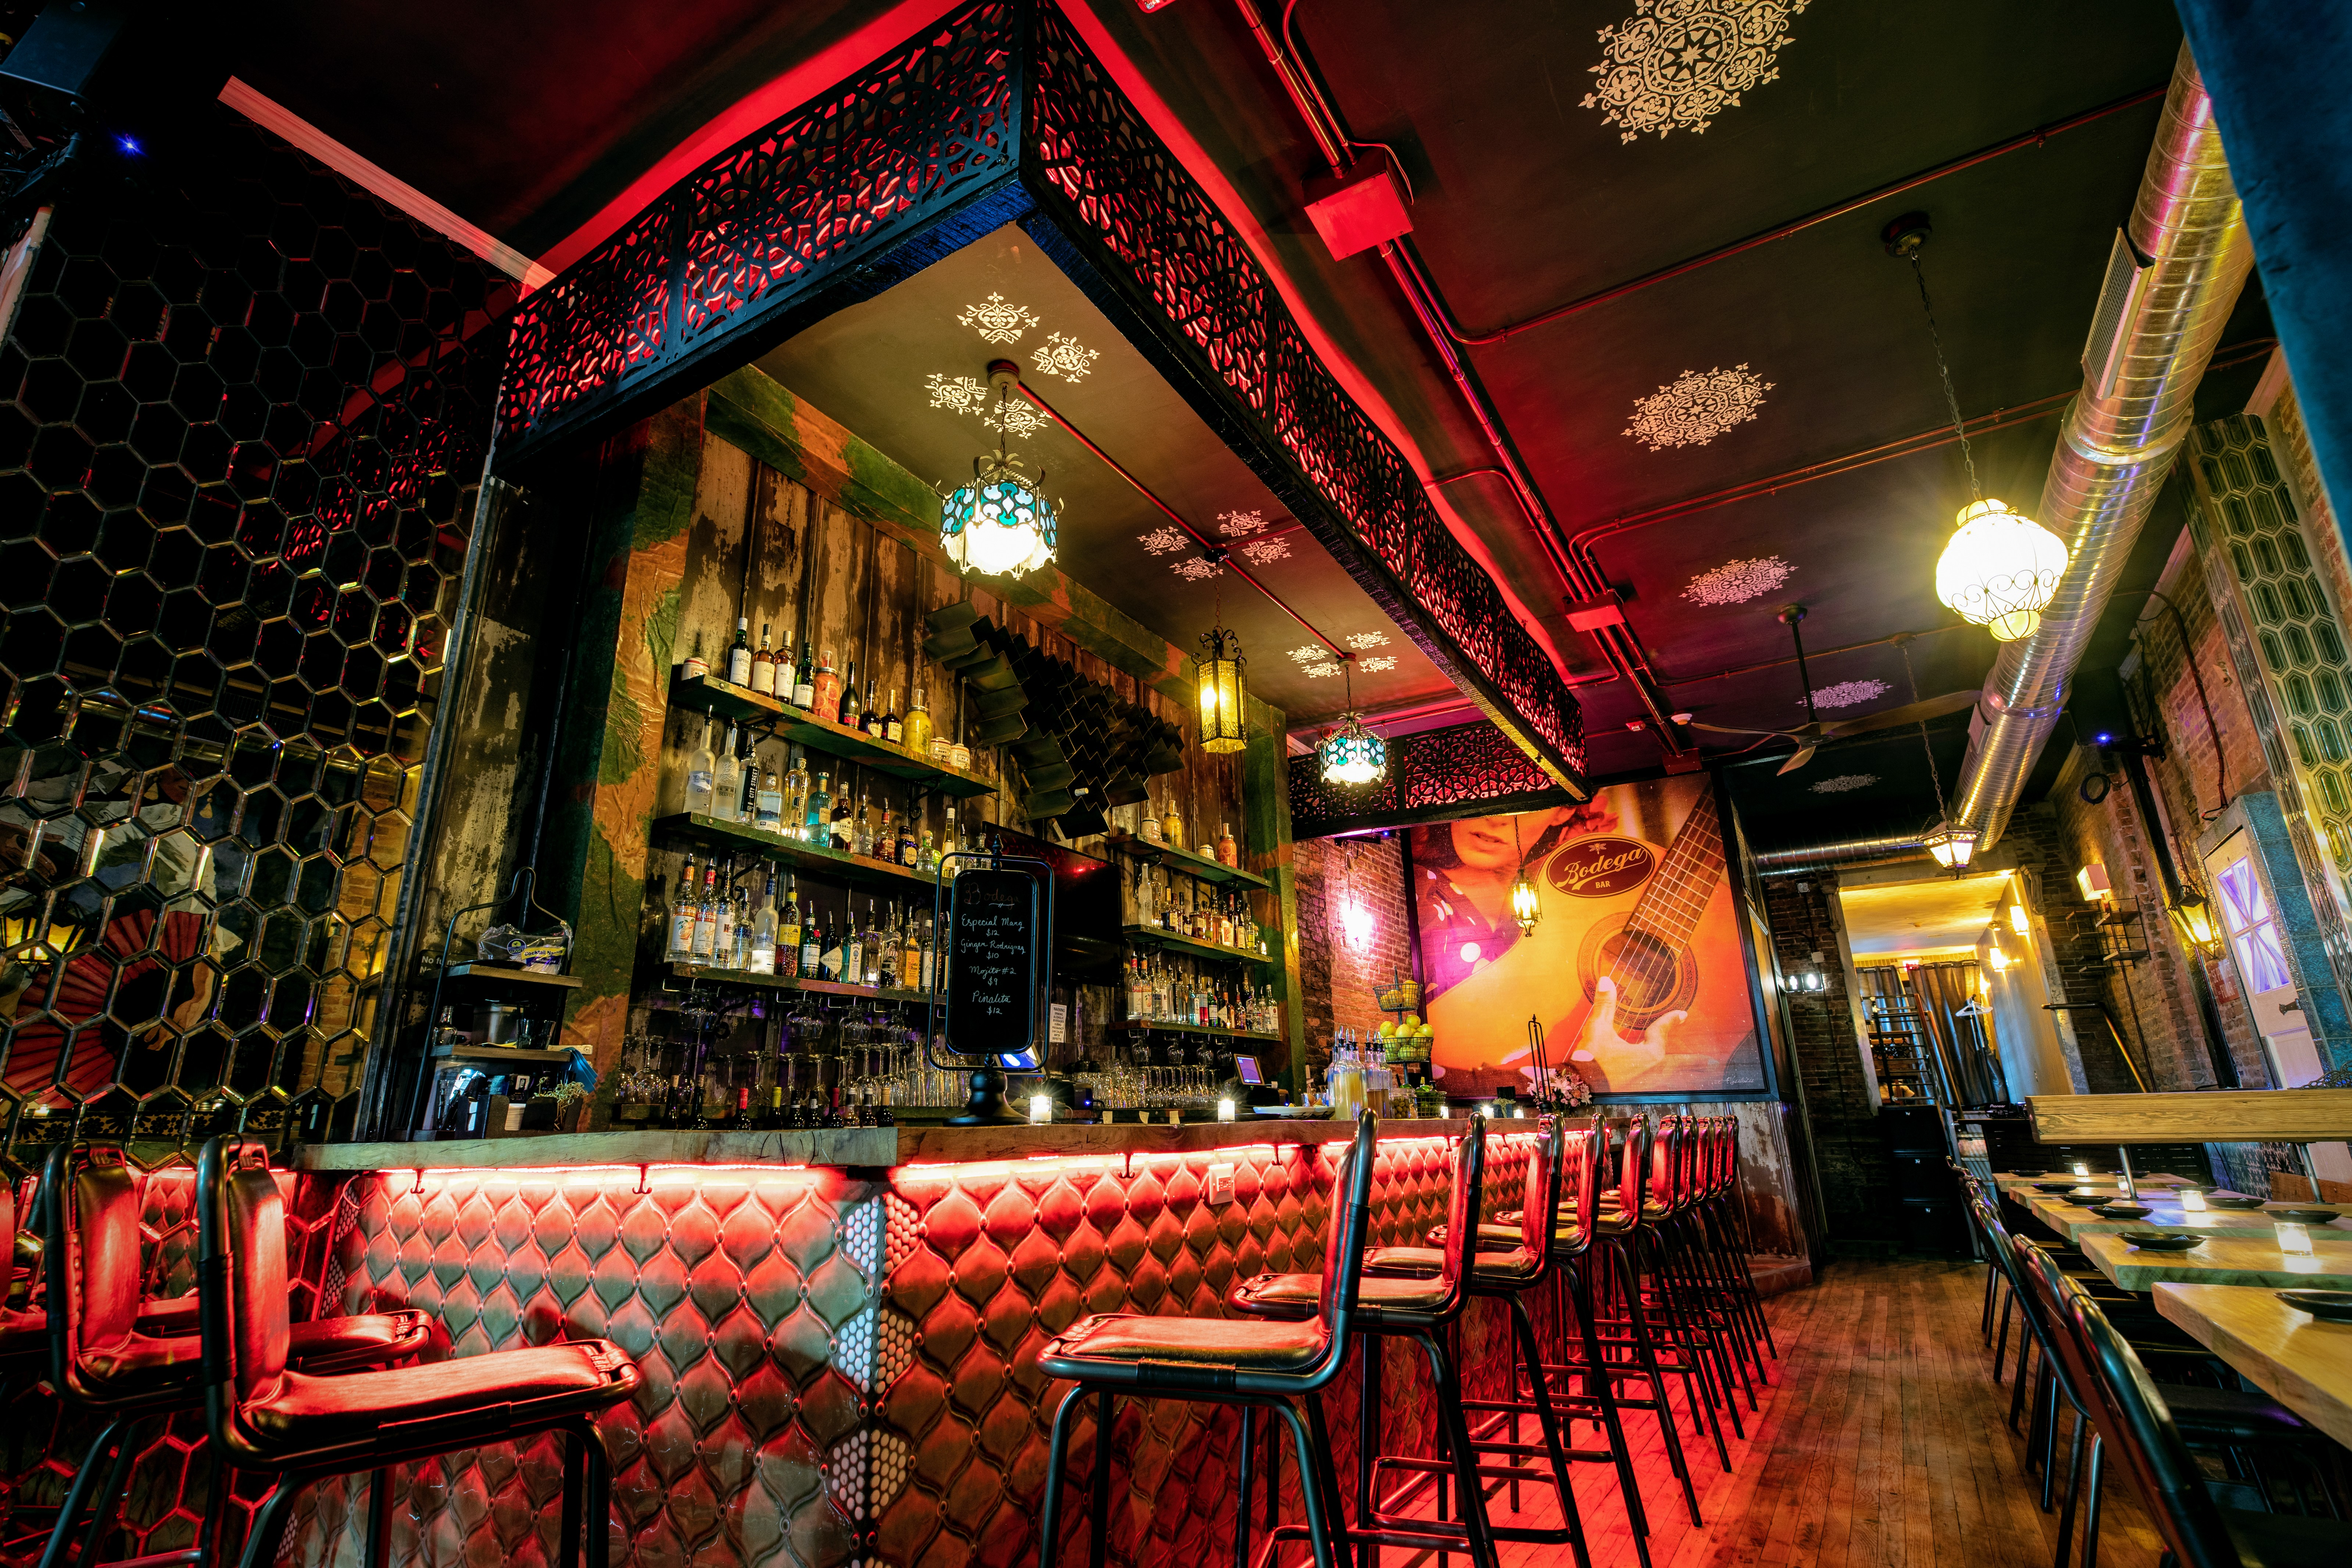 red-lit bar with row of stools and mural on the wall